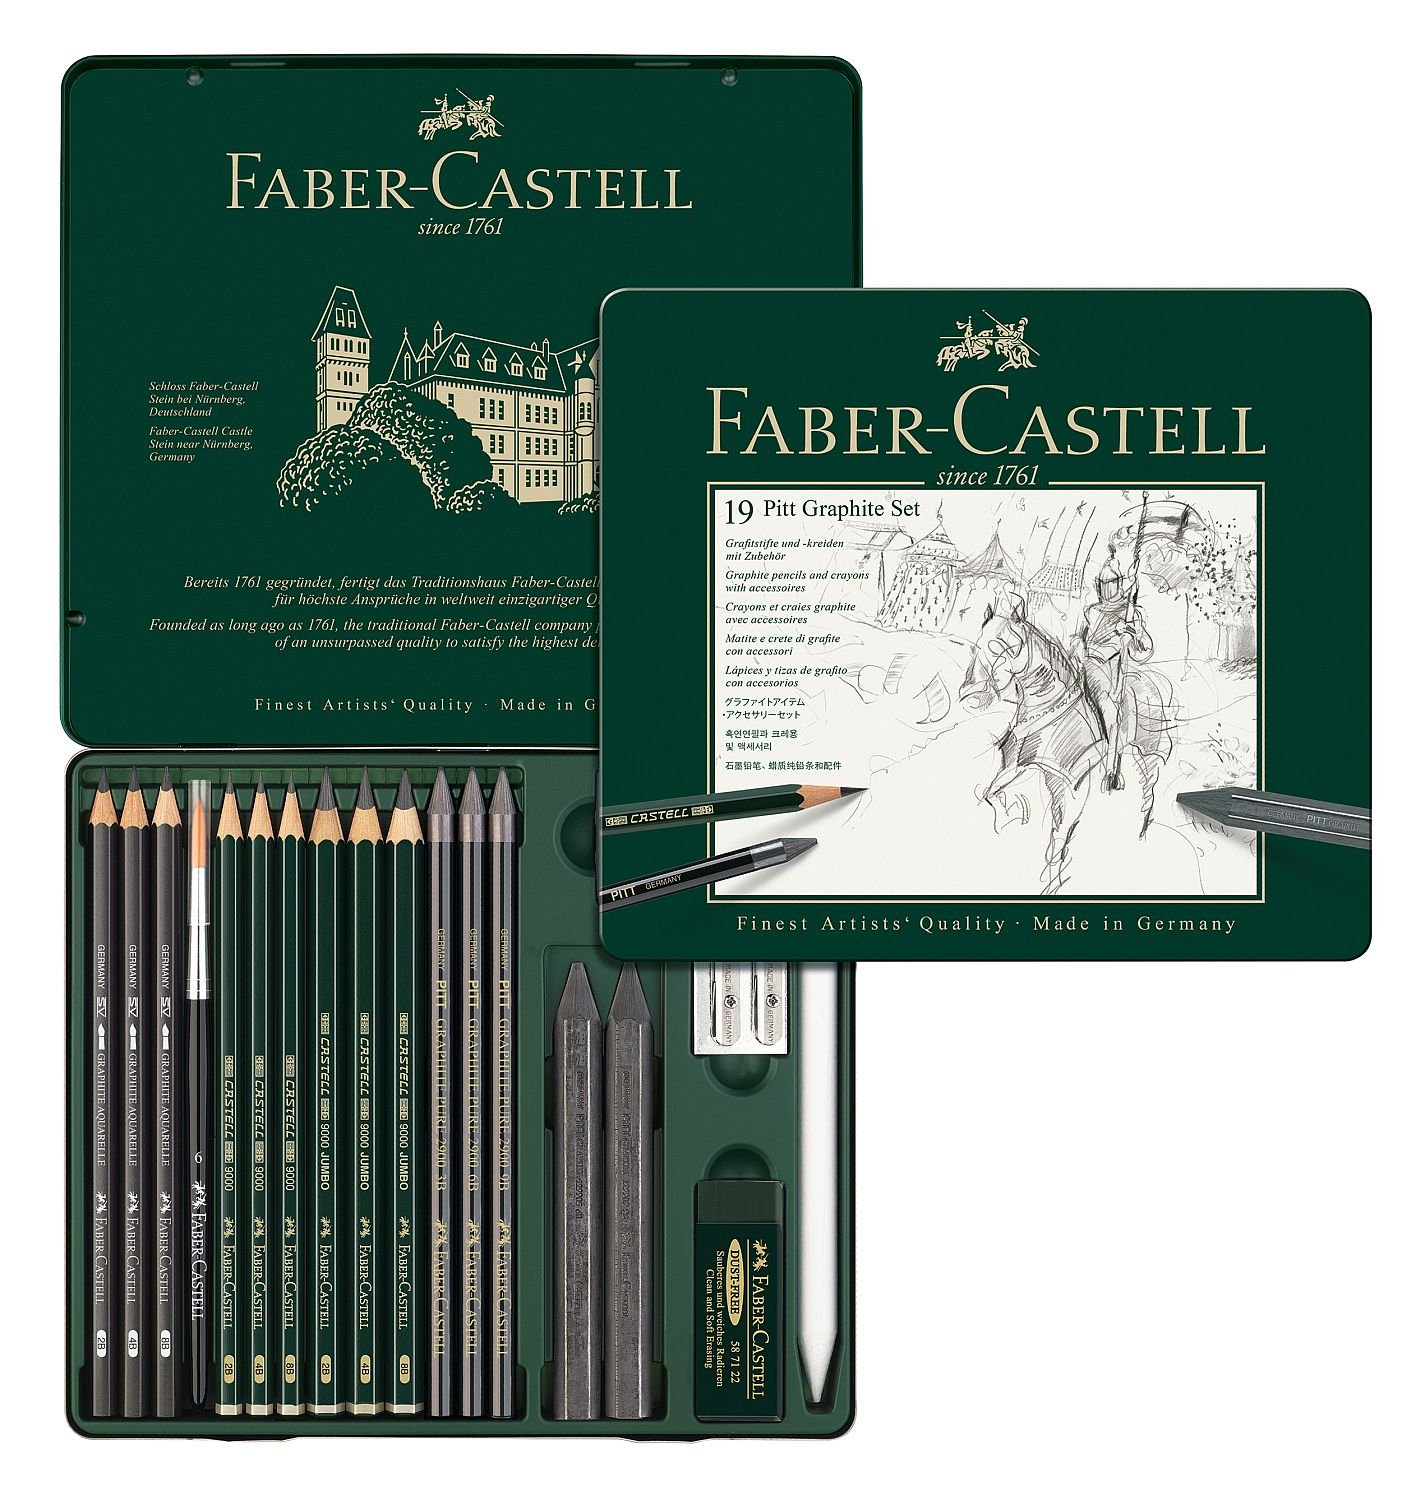 Uncategorized Faber Kitchen Appliances amazon com faber castel 19 piece pitt graphite tin set